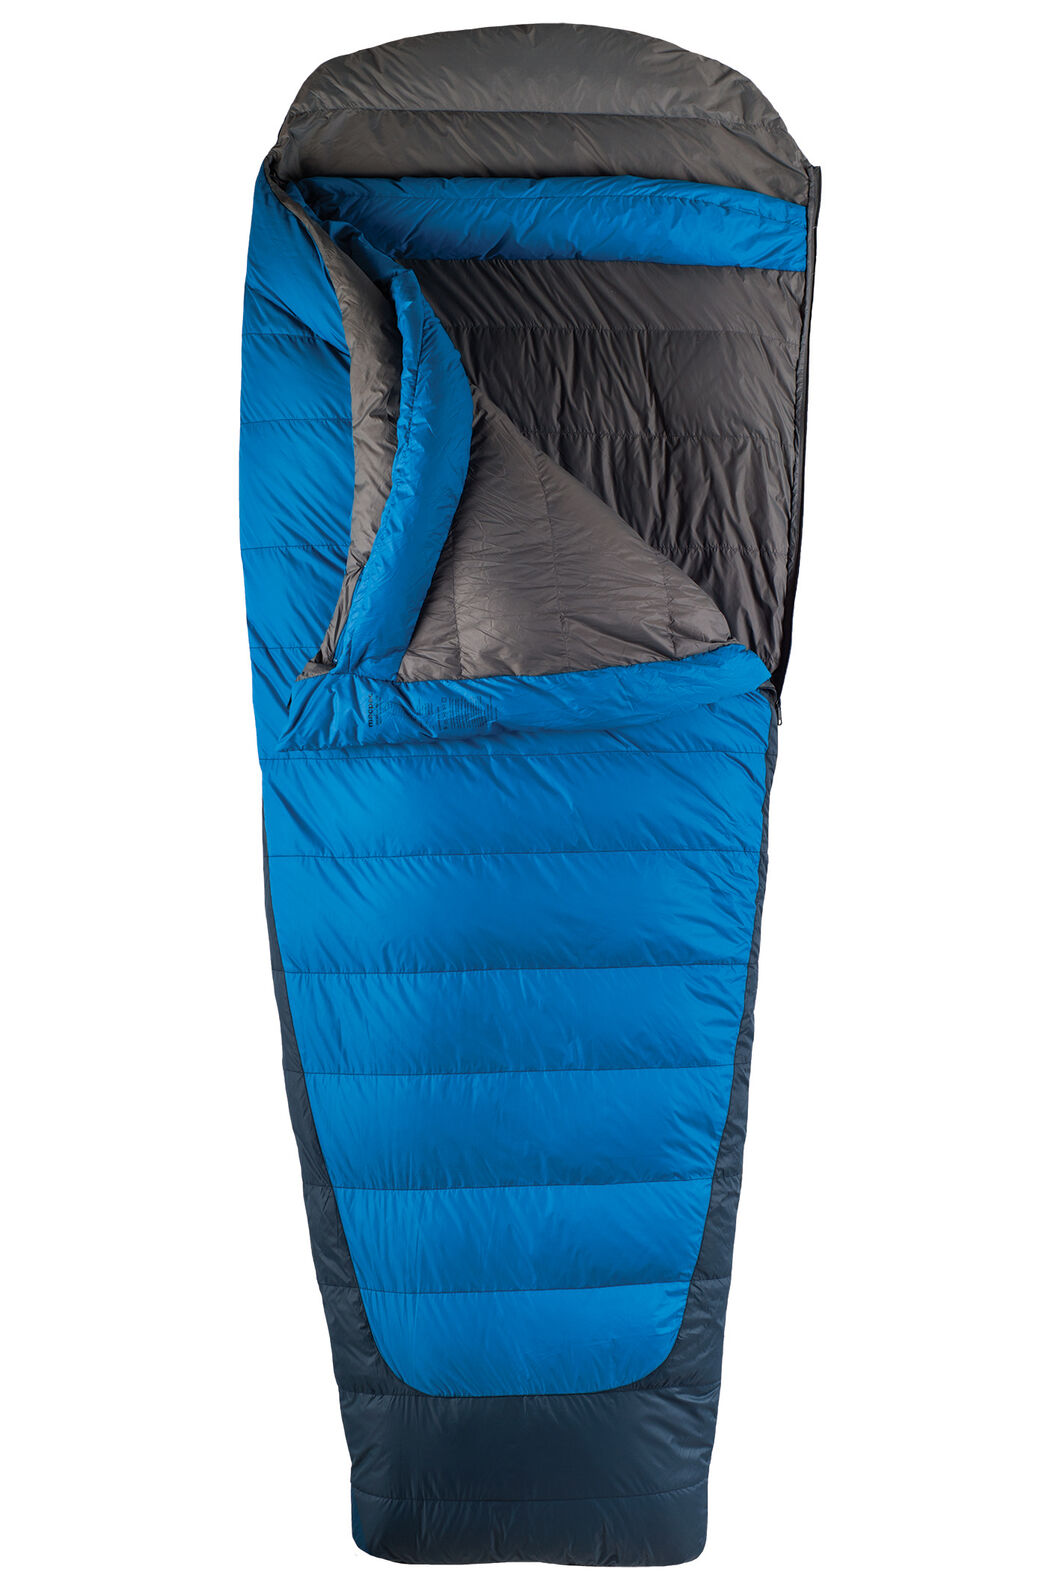 Escapade Down 350 Sleeping Bag - Standard, Classic Blue, hi-res